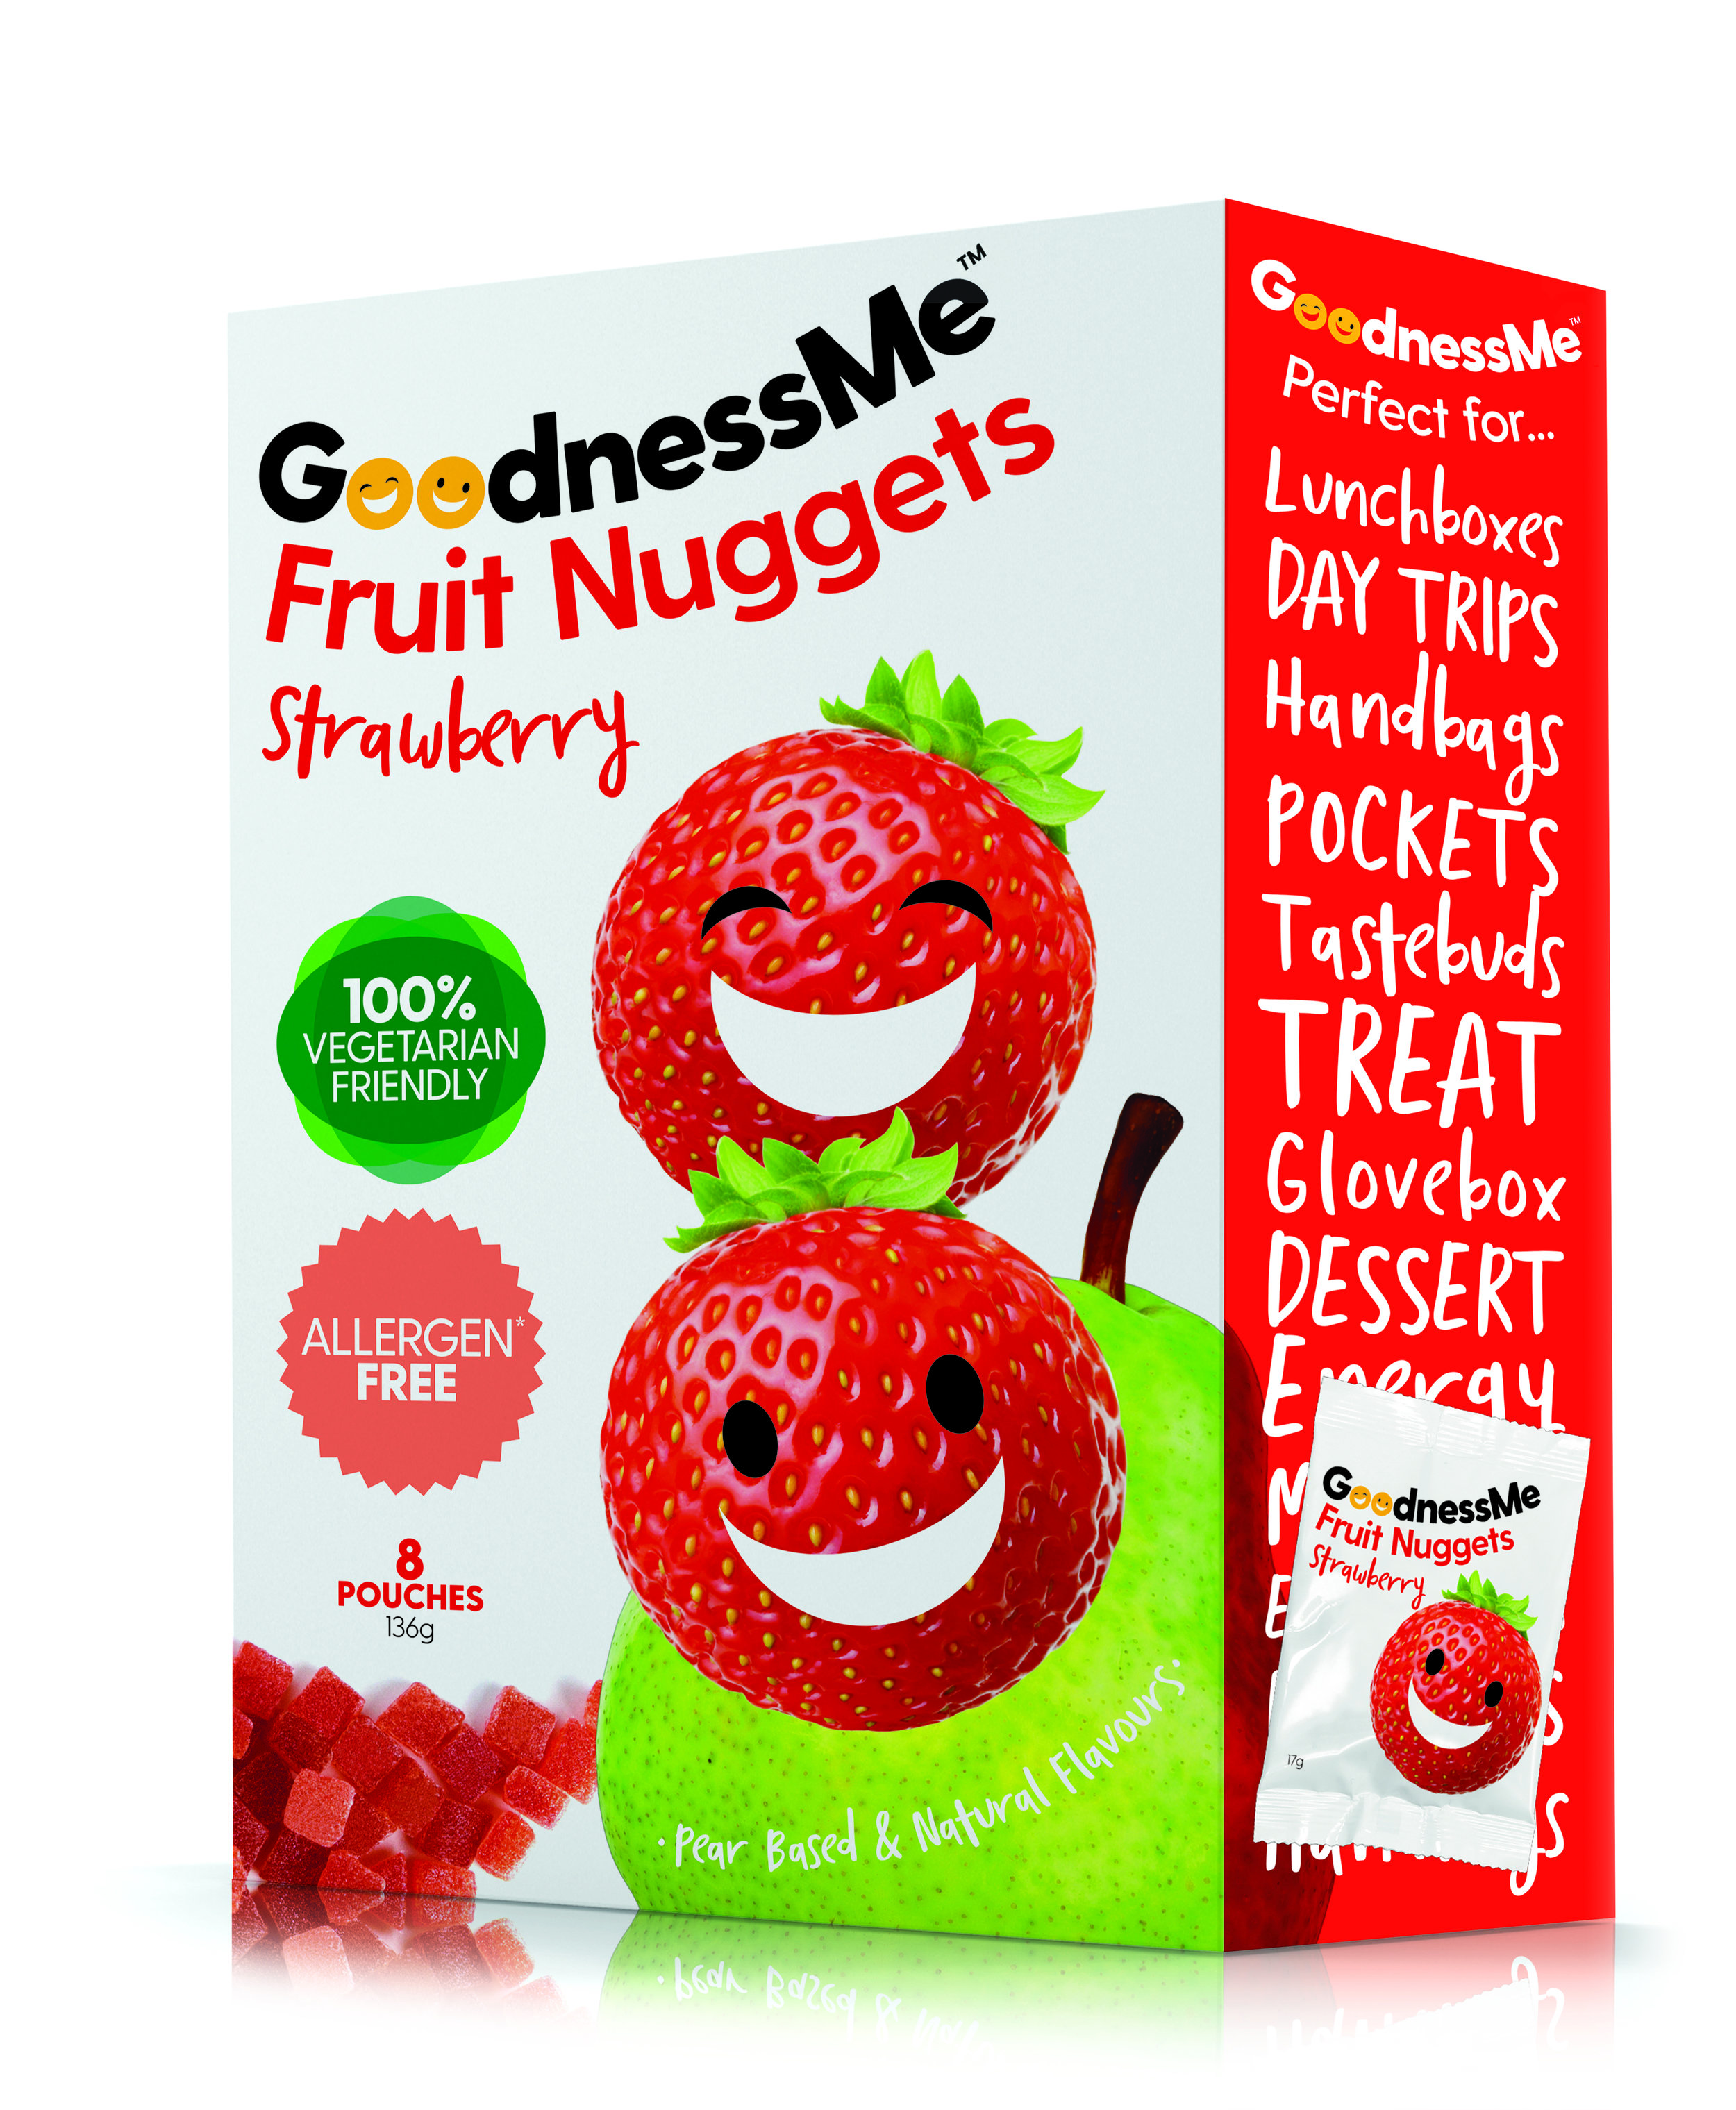 NZGF-GoodnessMe-Fruit-Nuggests-Pack-Strawberry.jpg